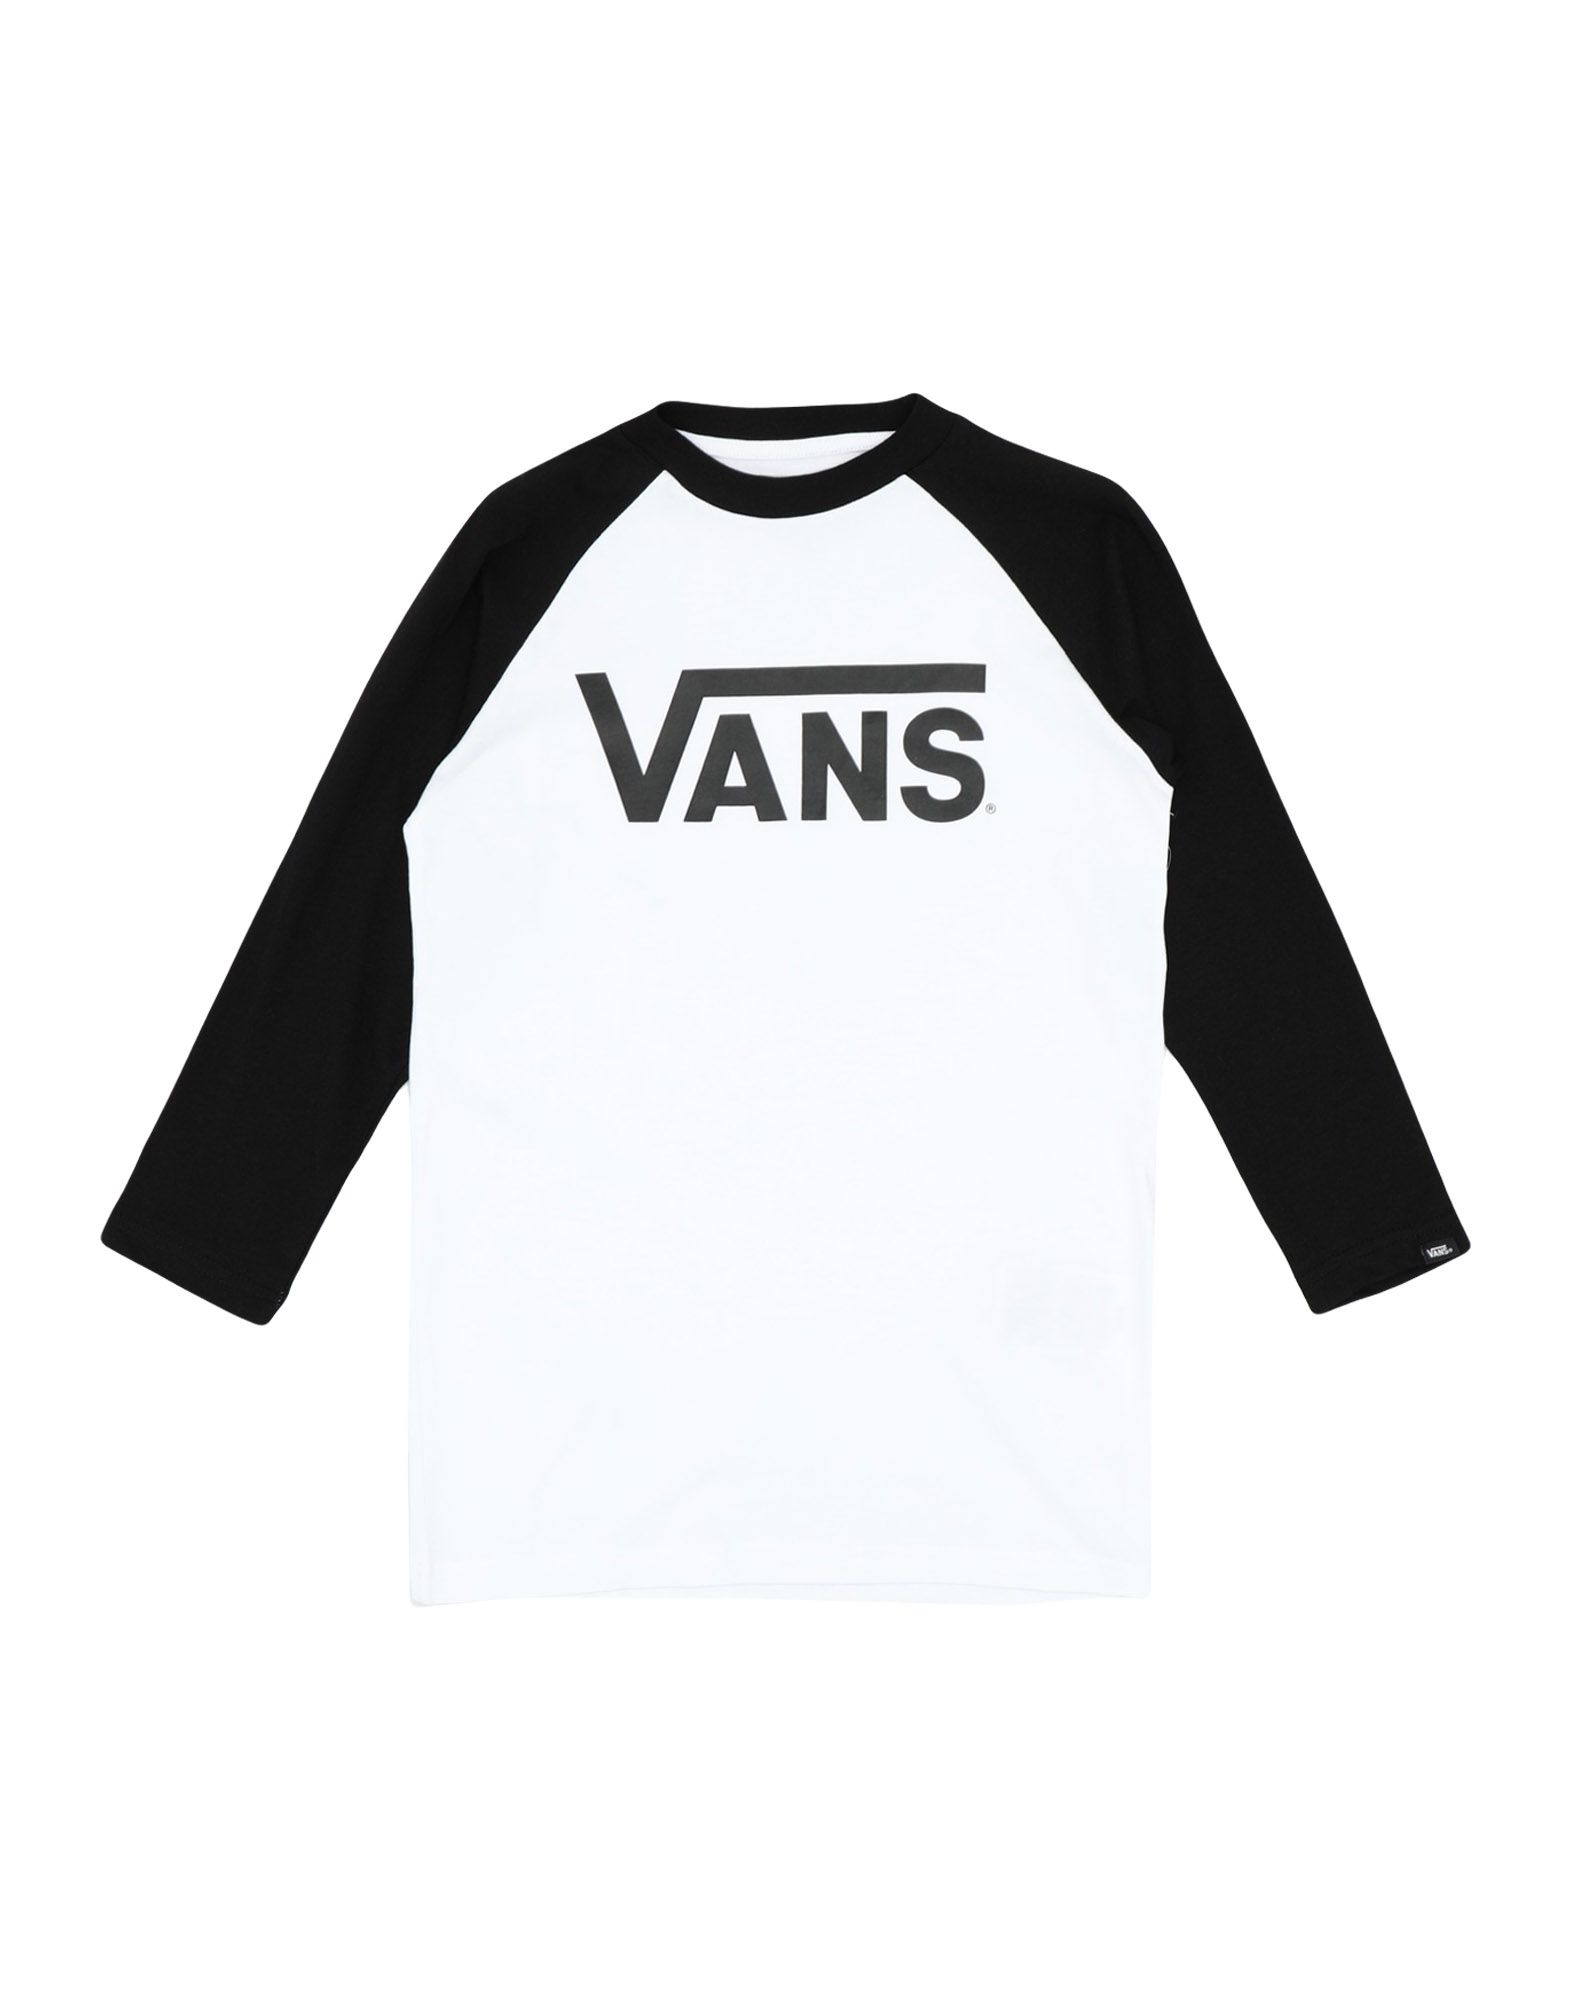 58ef5795b3 Cotton T-Shirts Vans Boy 3-8 years - childrenswear at YOOX